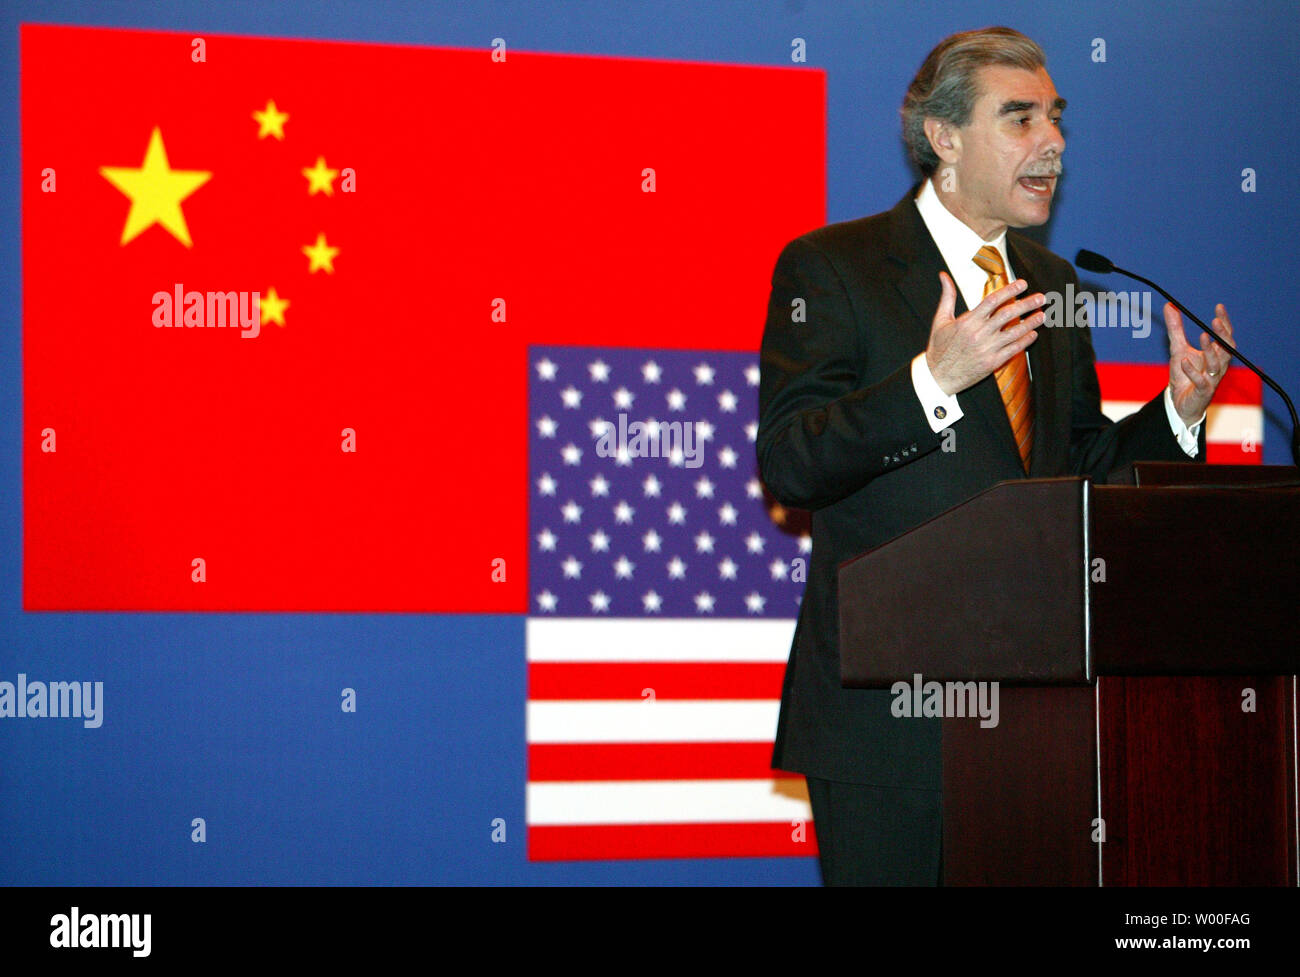 U.S. Commerce Secretary Carlos Gutierrez addresses a gathering of top U.S. and Chinese business executives at an Intellectual Property Rights Roundtable in Beijing, China,  November 14, 2006.  Gutierrez urged Beijing to toughen a crackdown on pirated goods and other copyright infringements, saying failure to do so could fuel an American backlash against trade with China.  (UPI Photo/Stephen Shaver) Stock Photo